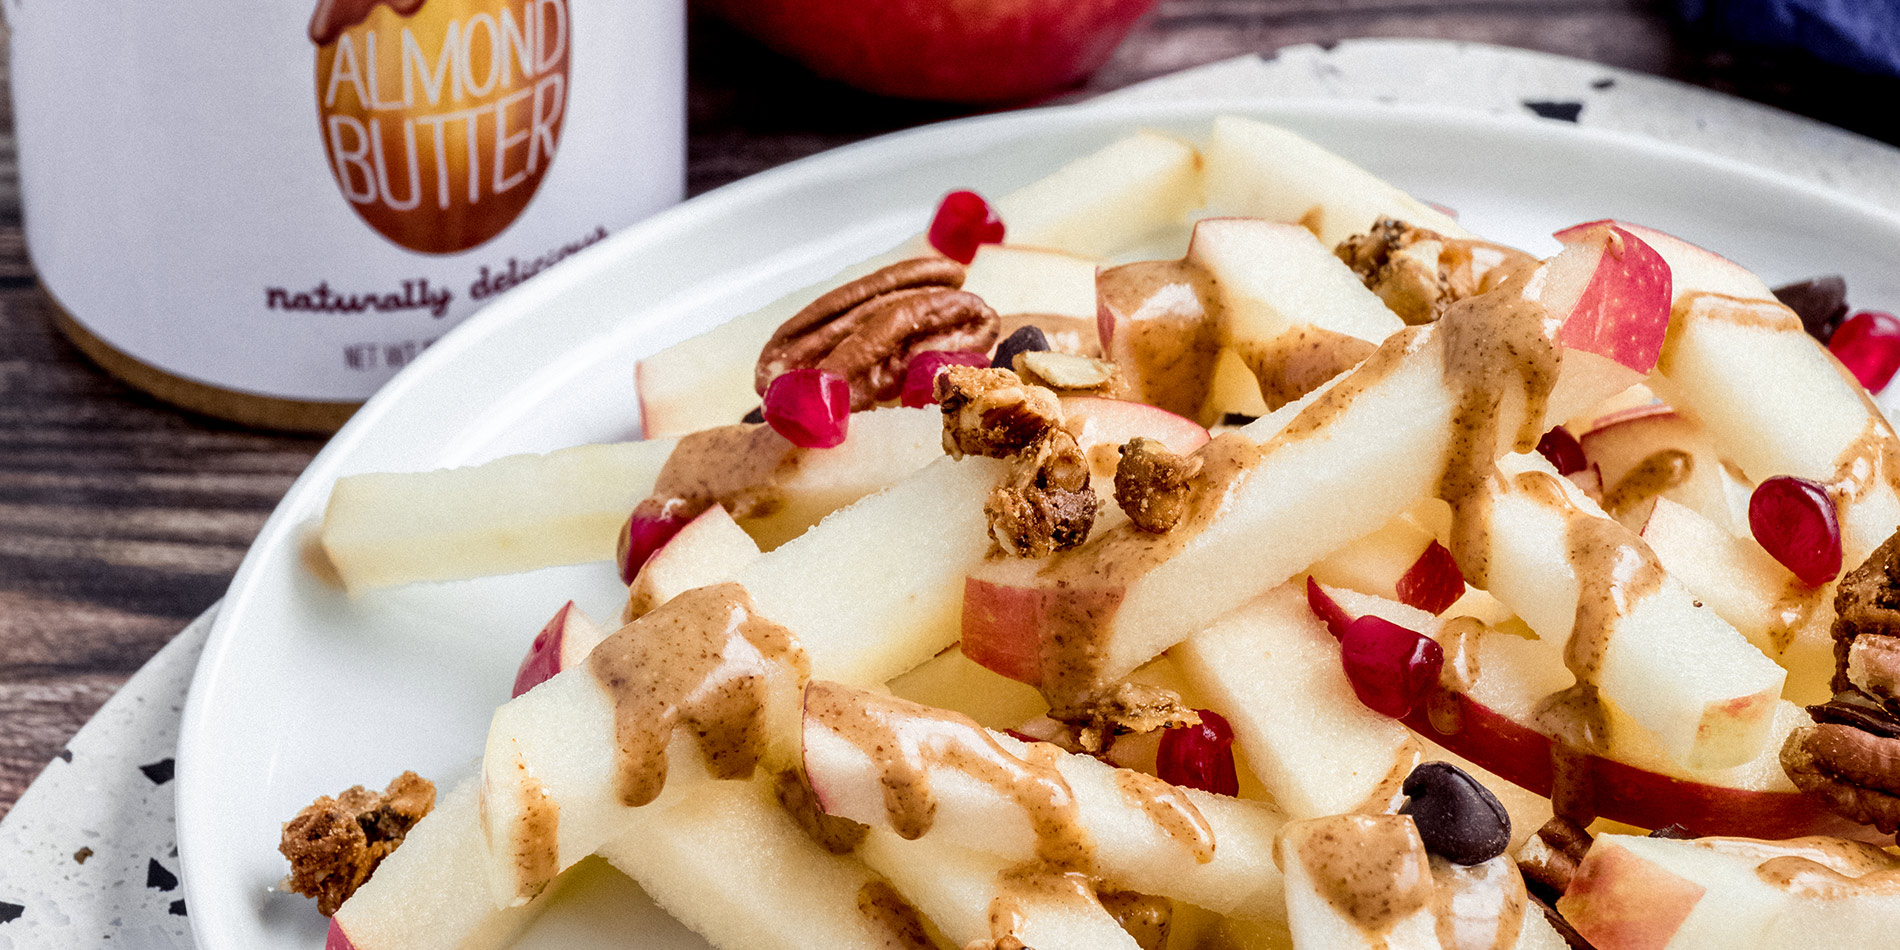 Apple Fries stacked on a ceramic plate, covered in Loaded dressing and toppings, on a dark wooden tabletop